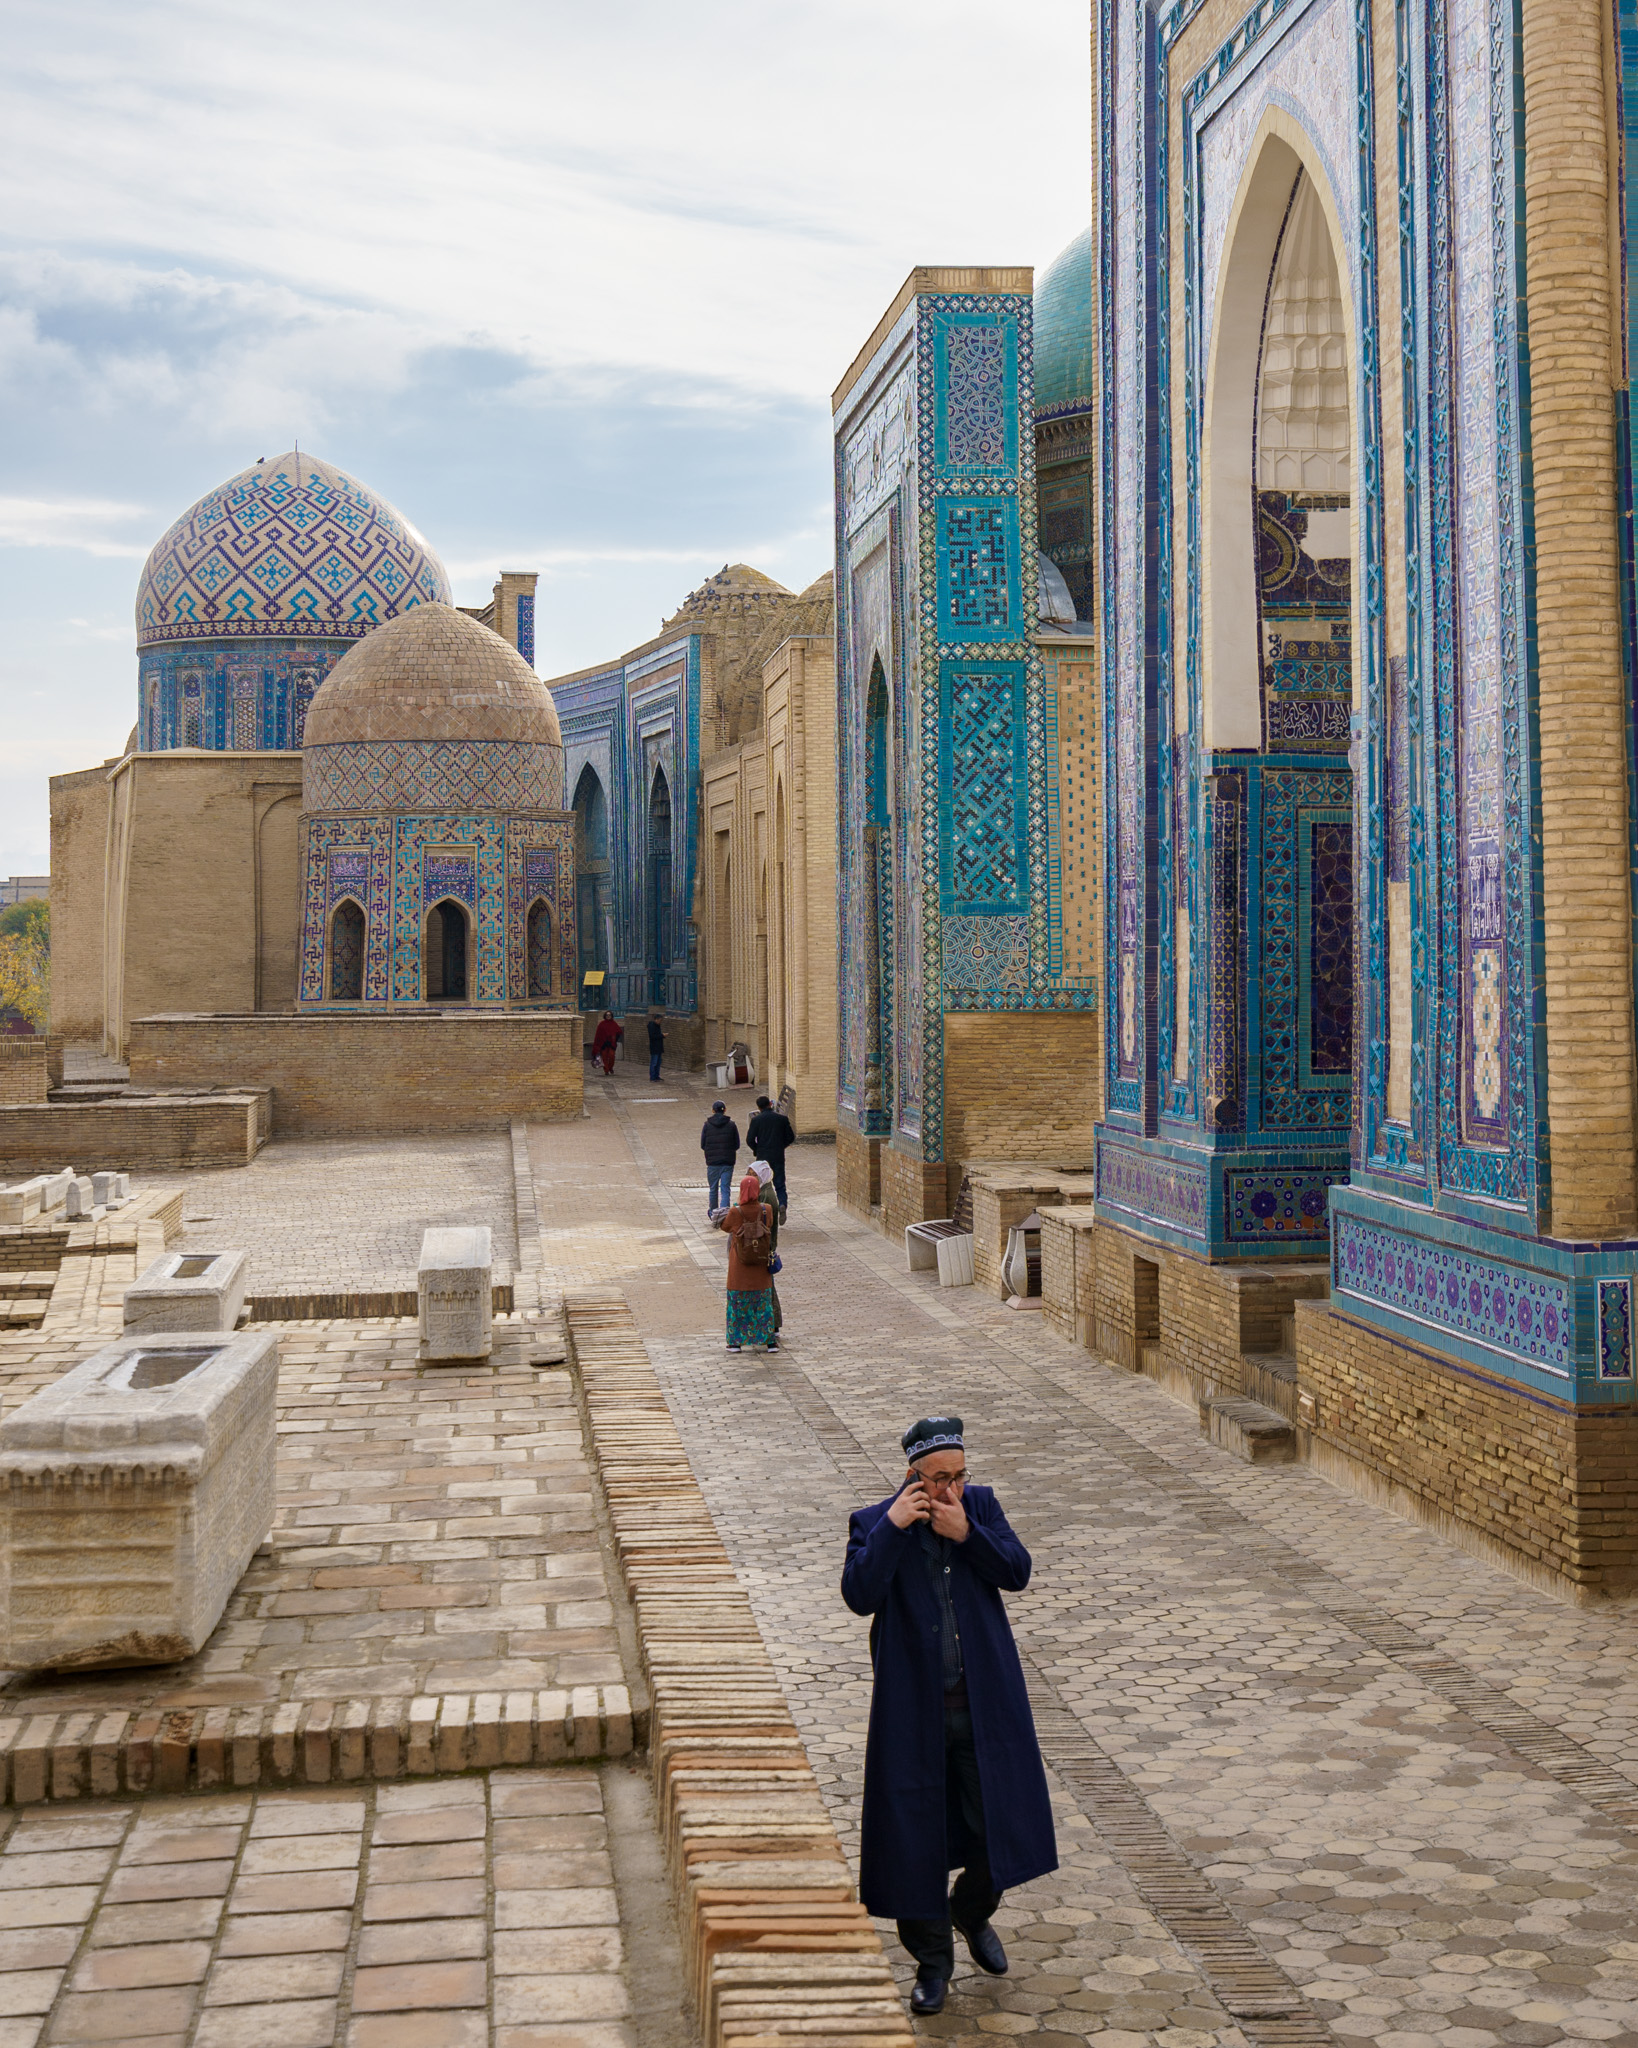 The Shah-i-Zinda necropolis in Samarkand